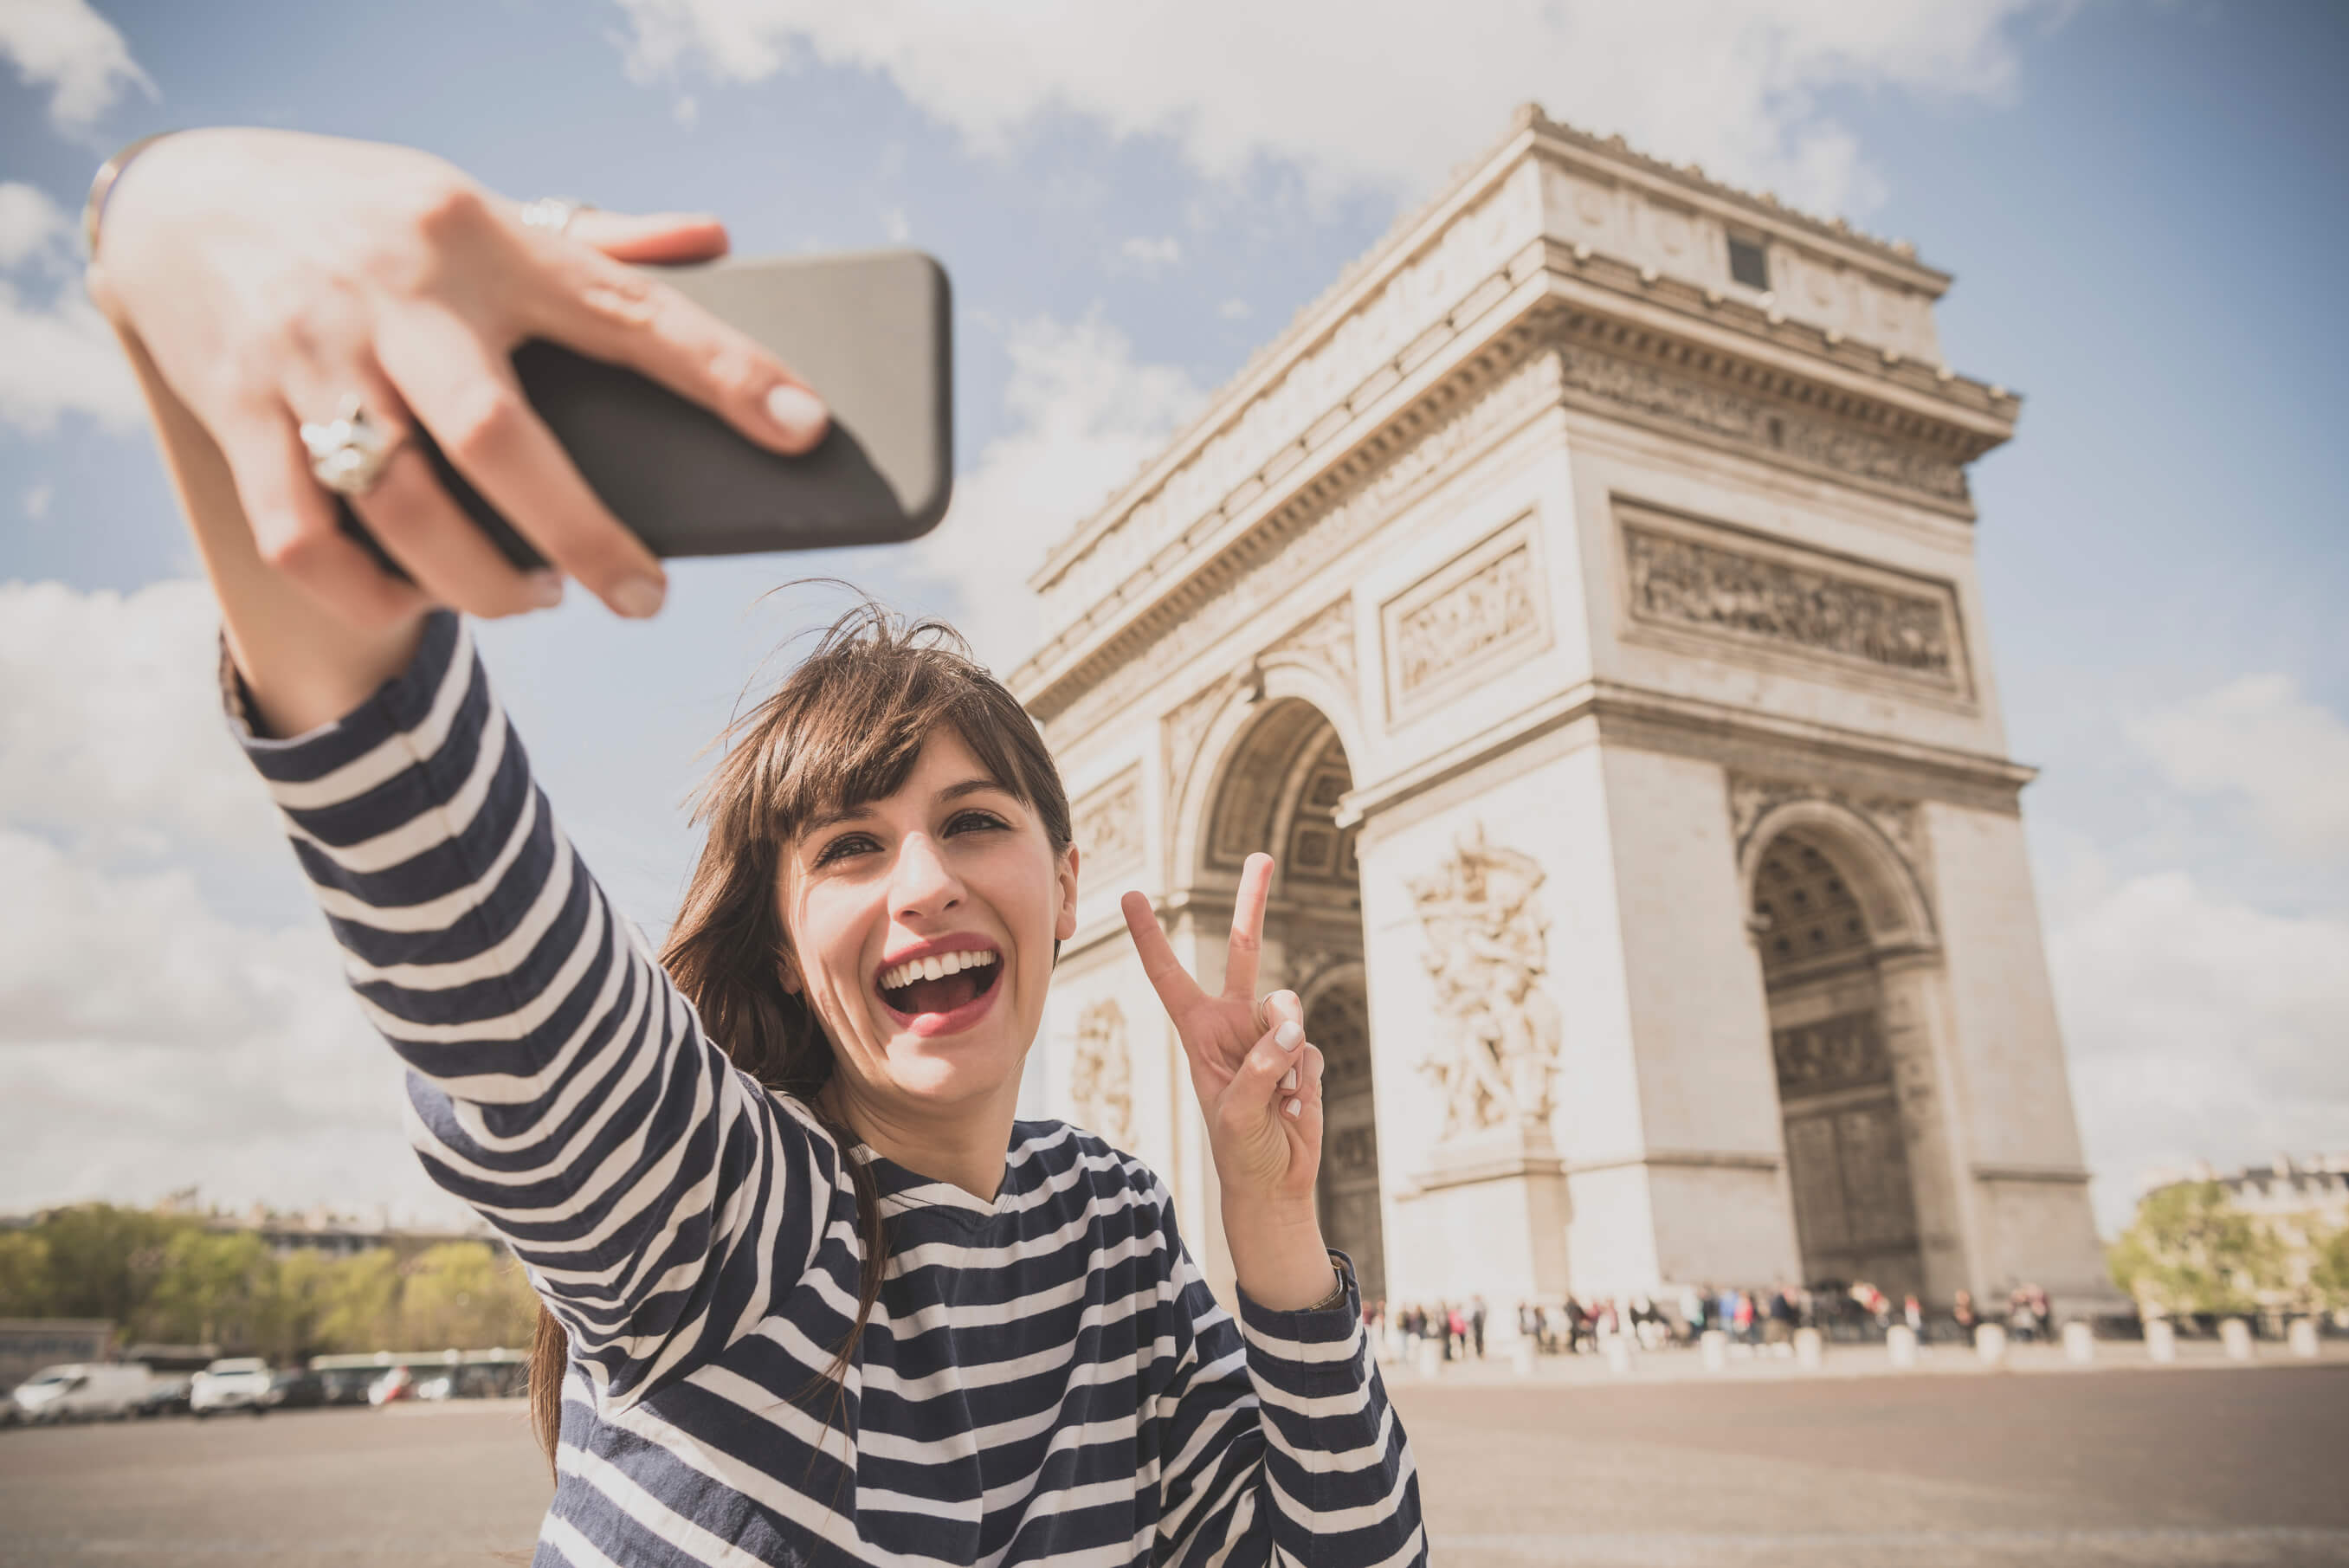 Woman having fun taking photo of herself by landmark in Paris, France. Young woman with camera phone posing for selfie